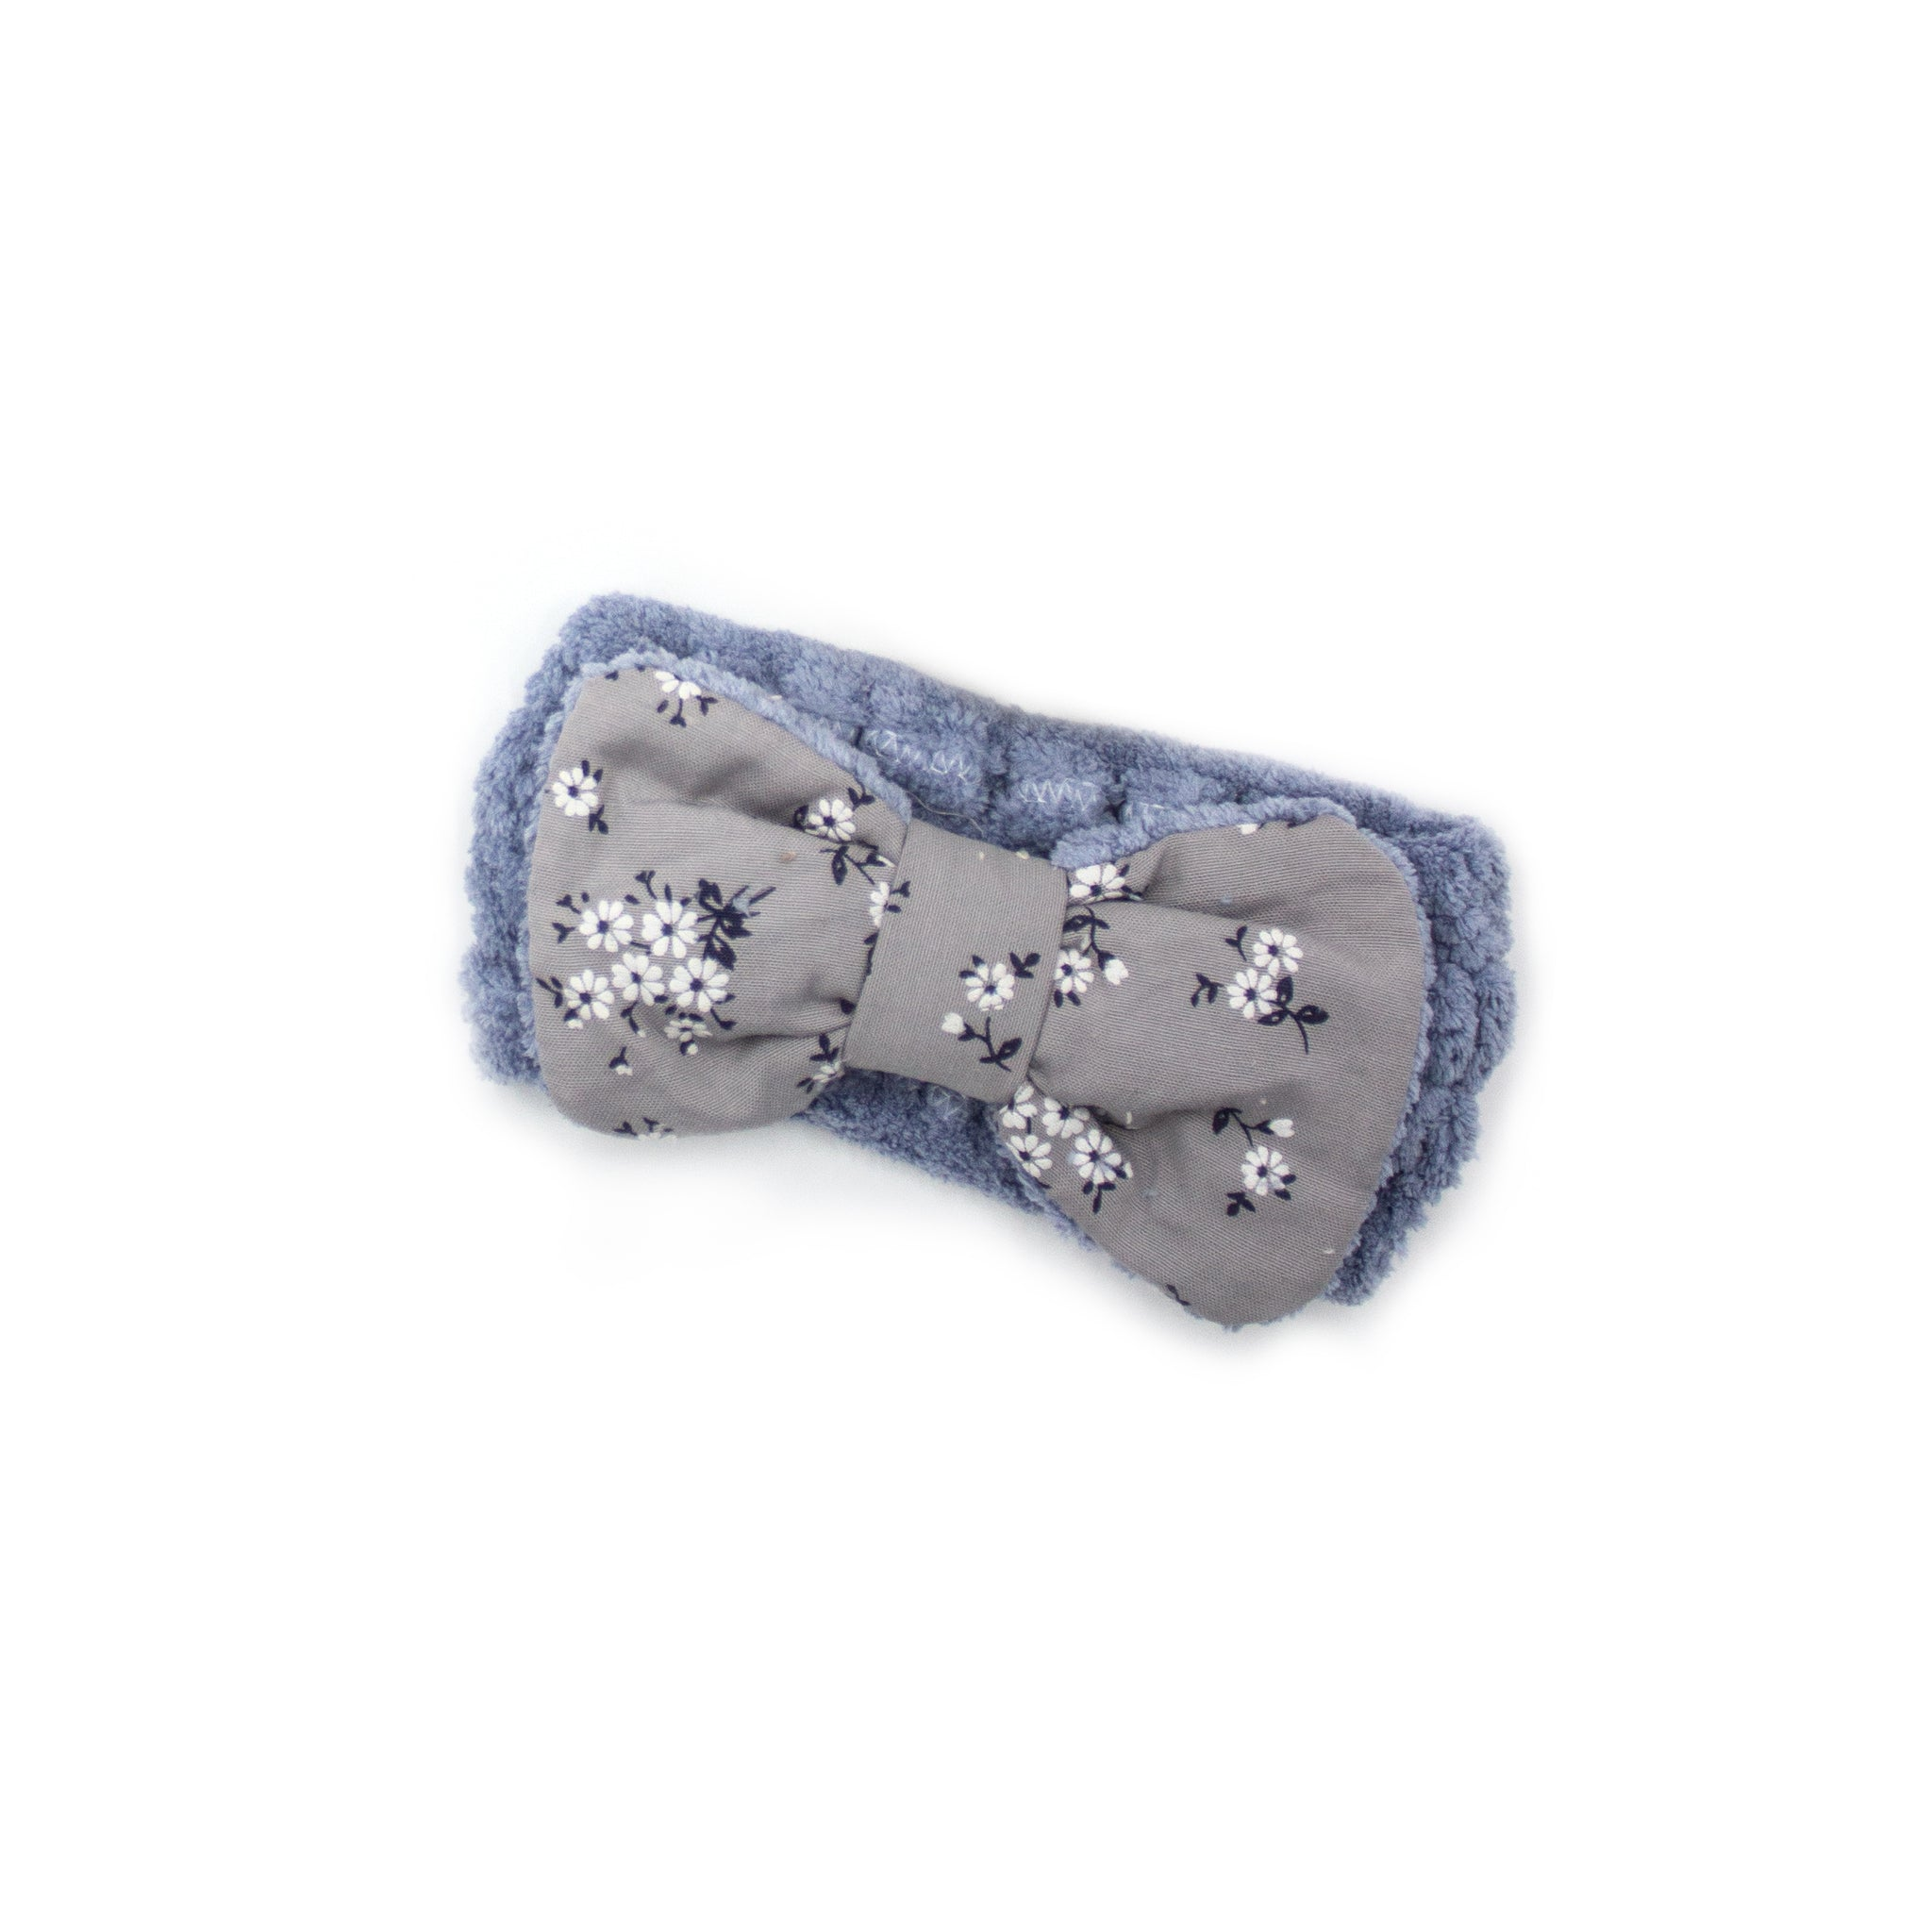 "Women's Cosmetic Headband, Light Blue with ""Flower"" print Gingham Style Bow, by MinxNY"